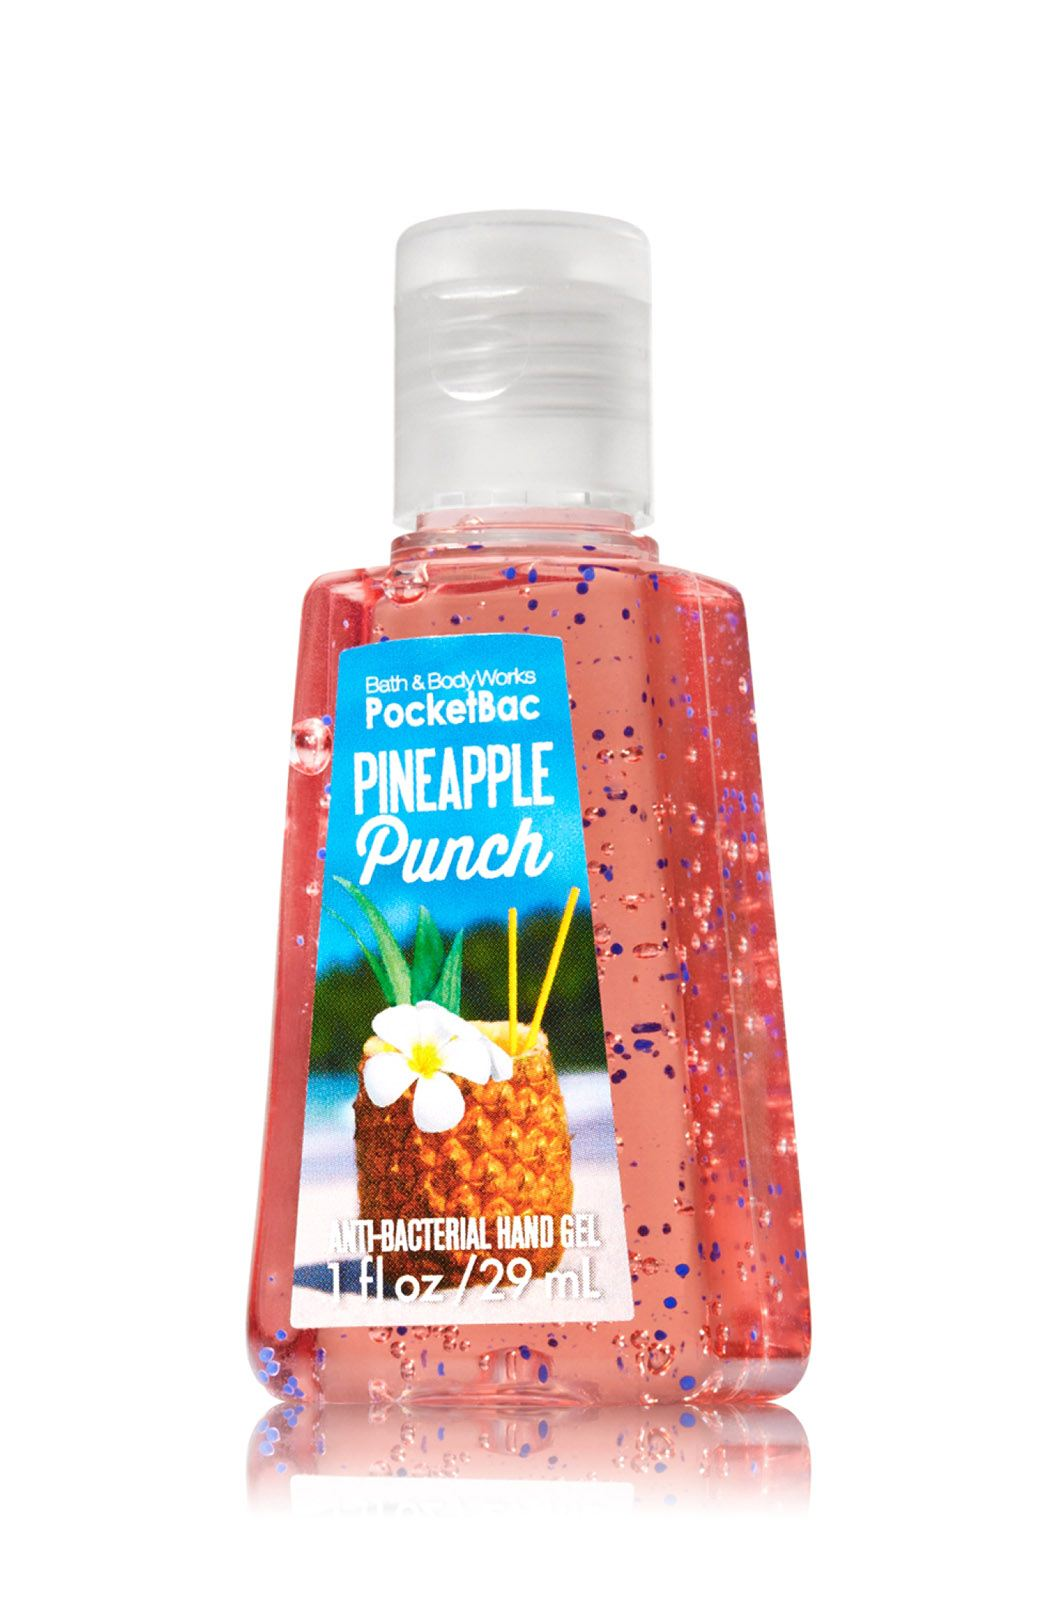 Bath Body Works PocketBac Hand Sanitizer Gel Soap | eBay